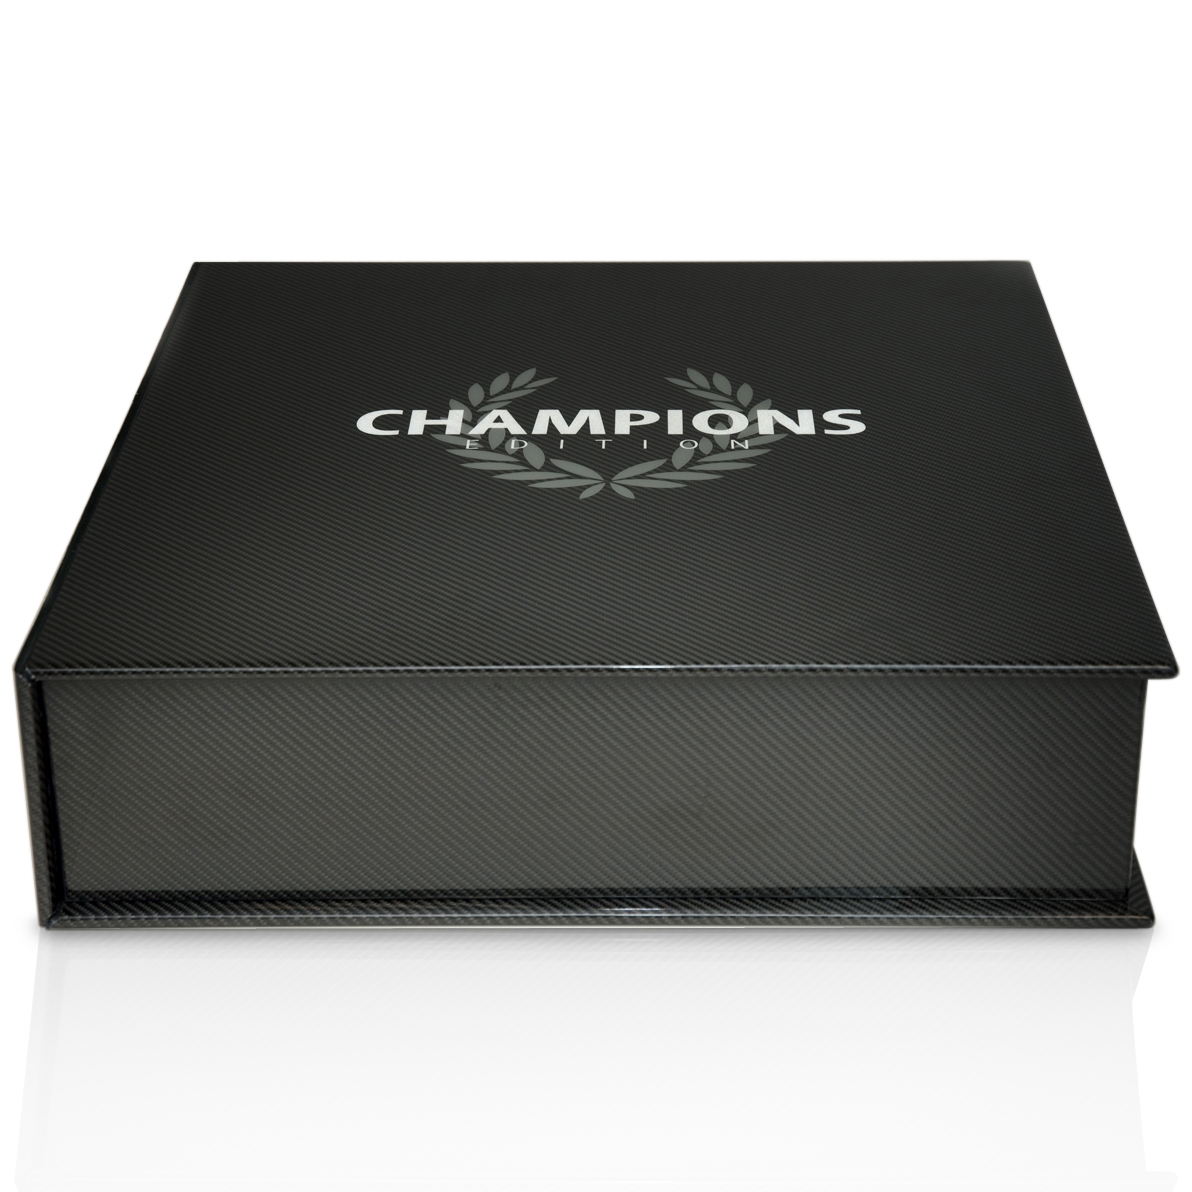 Formula One Official F1 Opus - Champions Edition